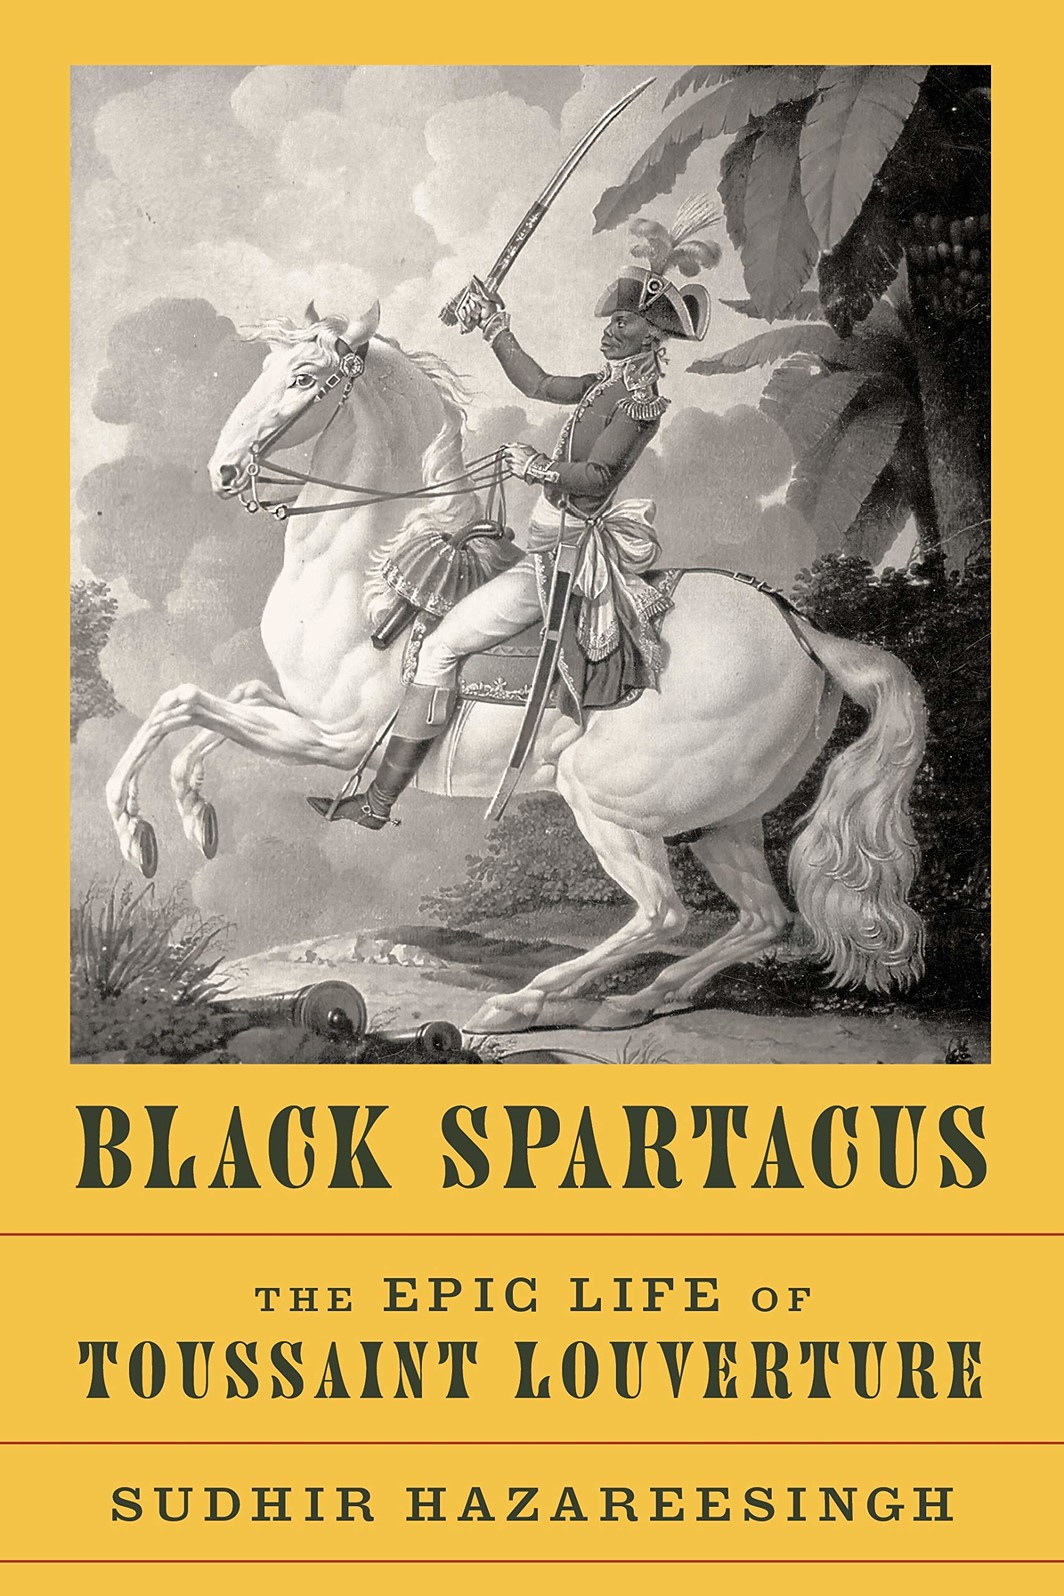 The cover of Black Spartacus: The Epic Life of Toussaint Louverture